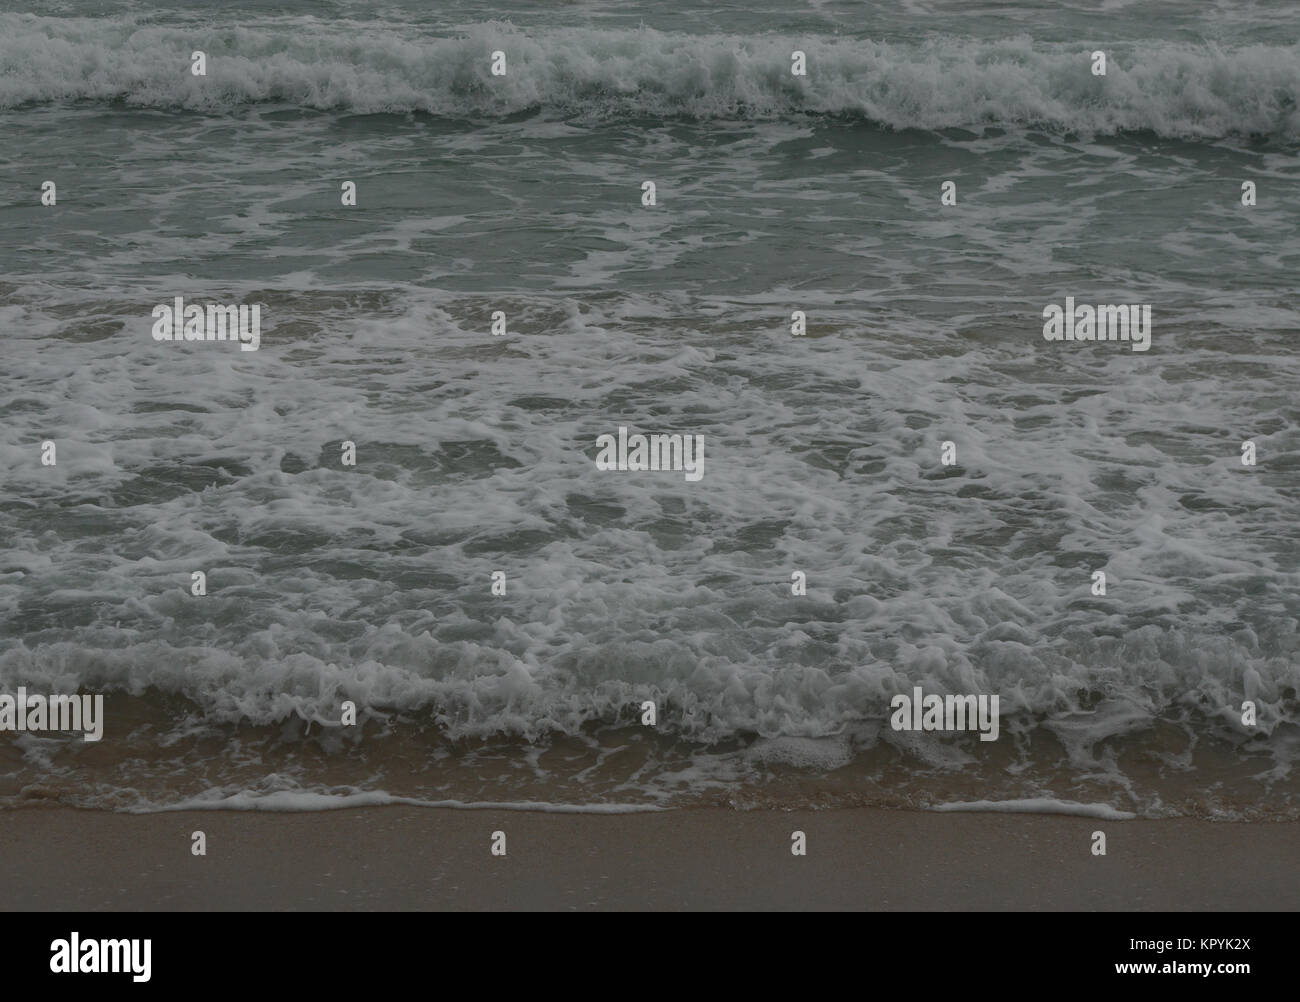 Waves on the beach - Stock Image